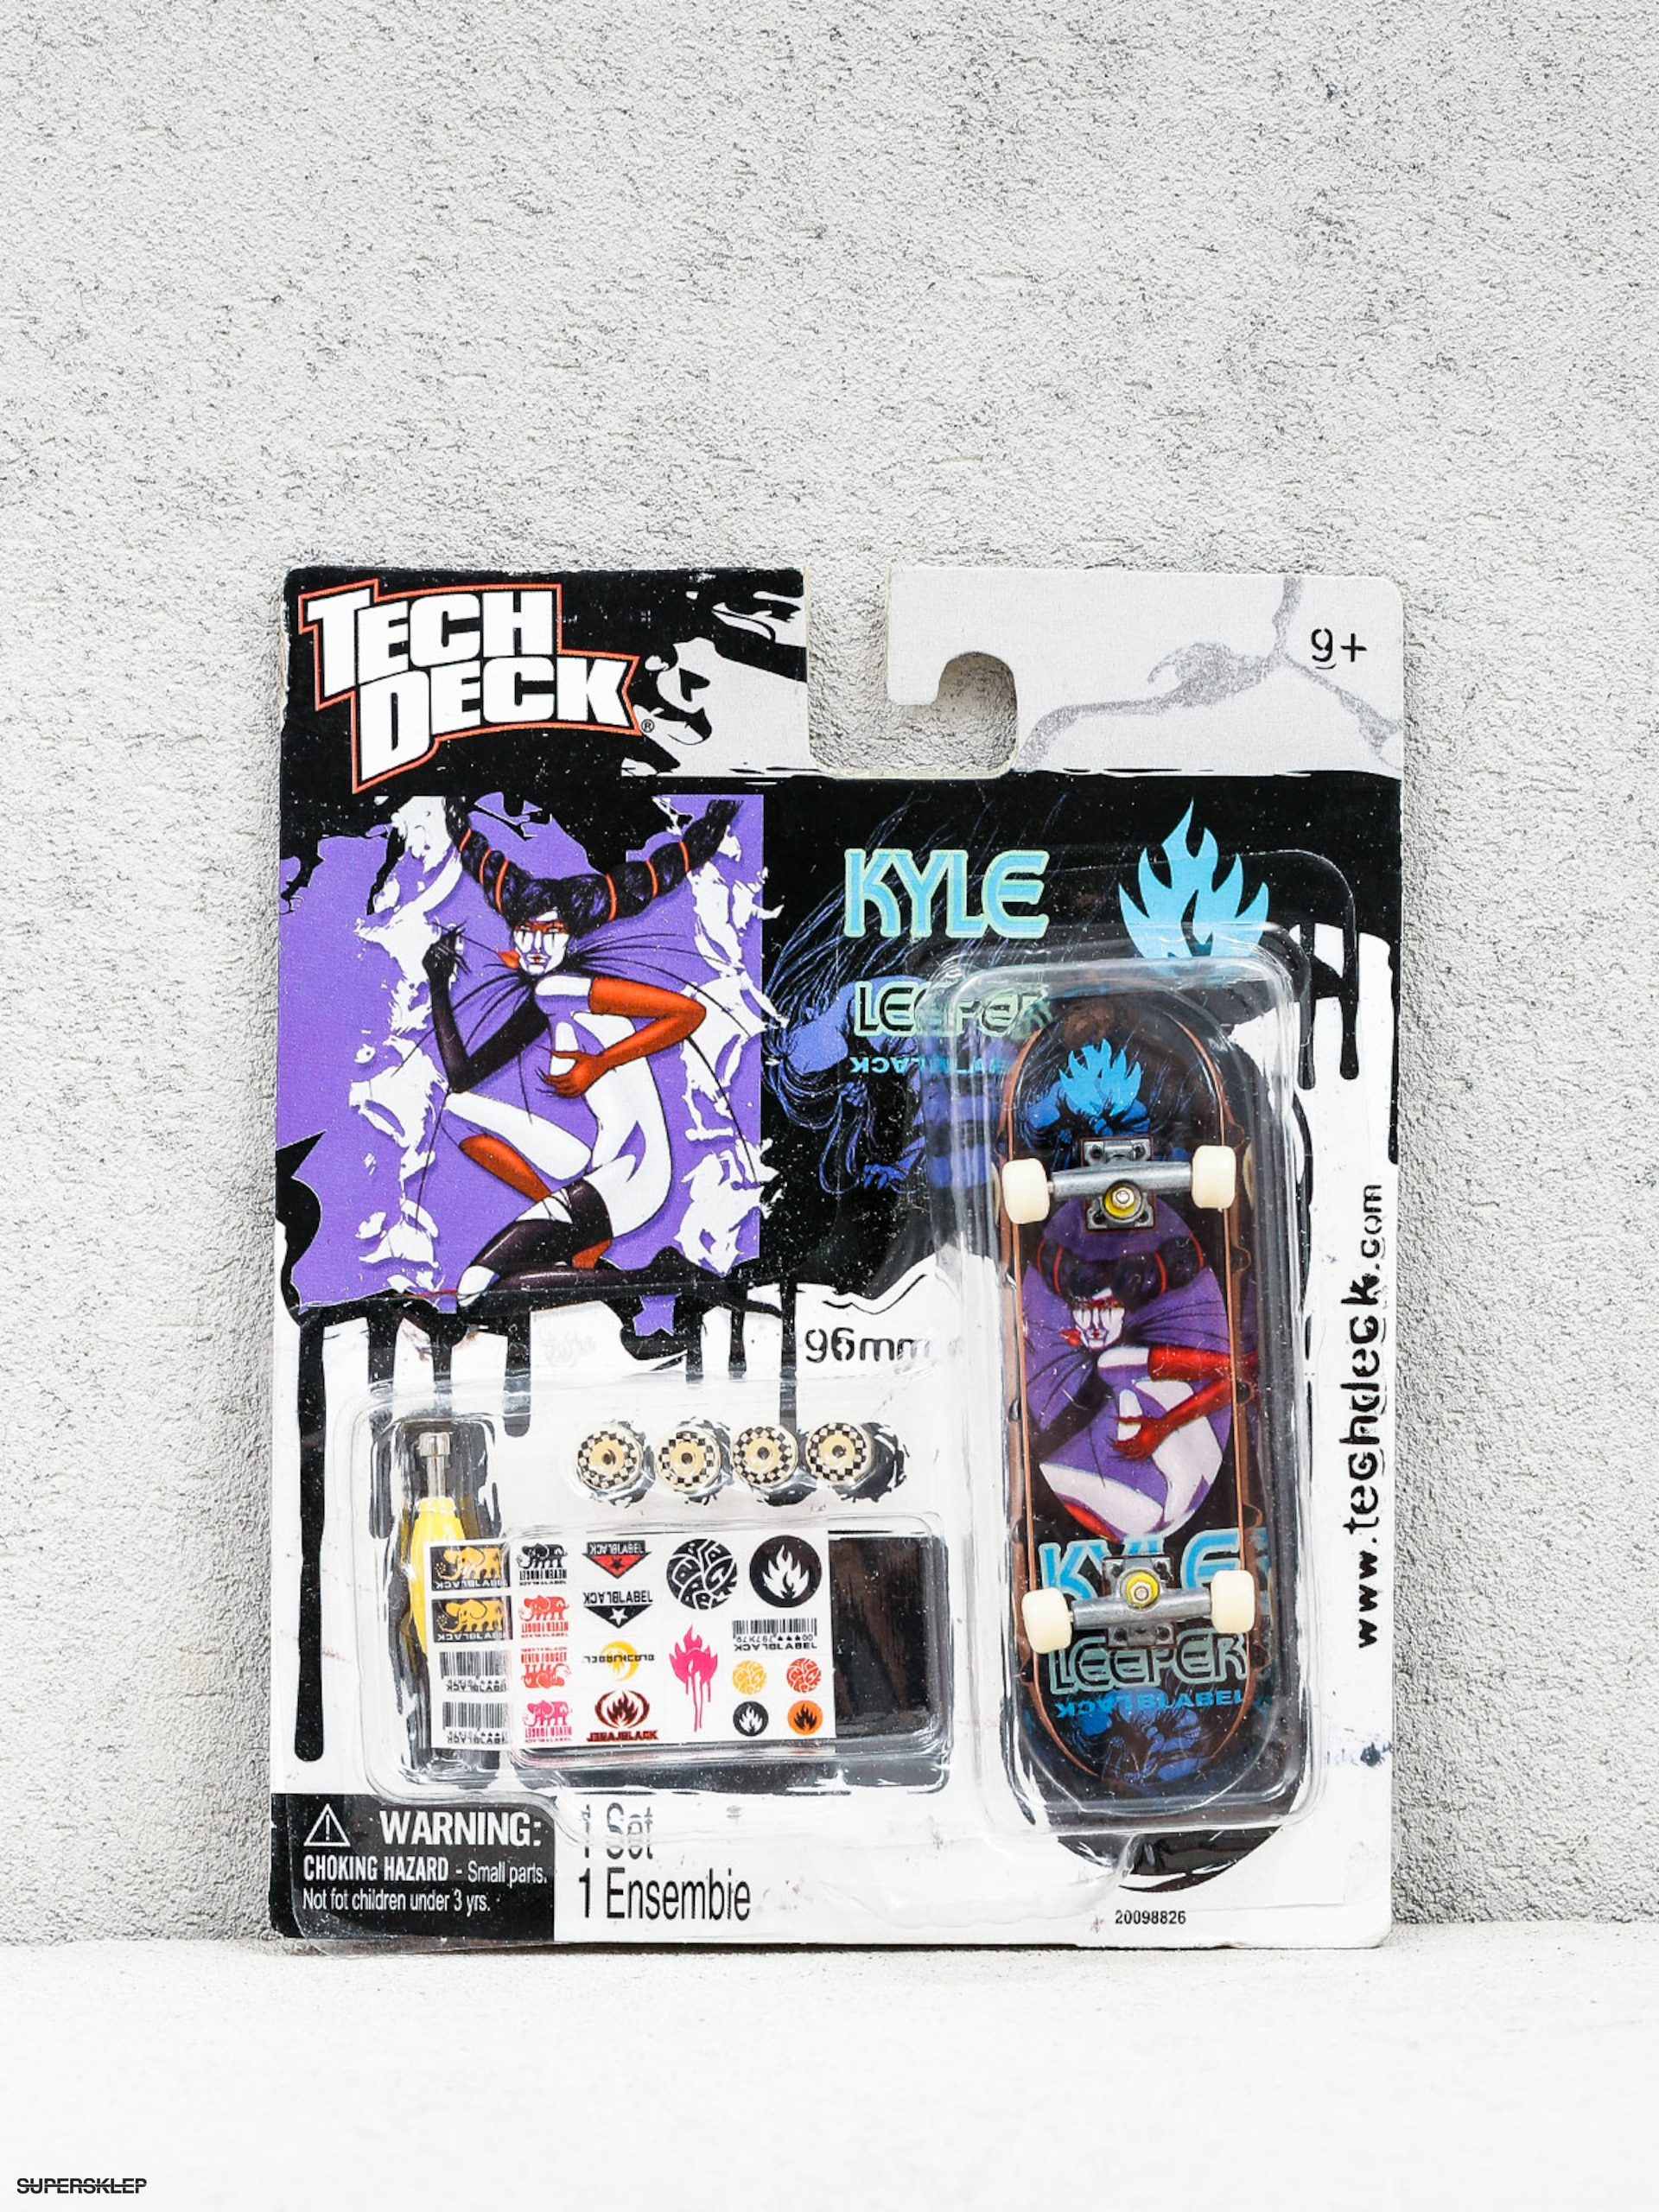 Tech Deck Fingerboard Black Label 02